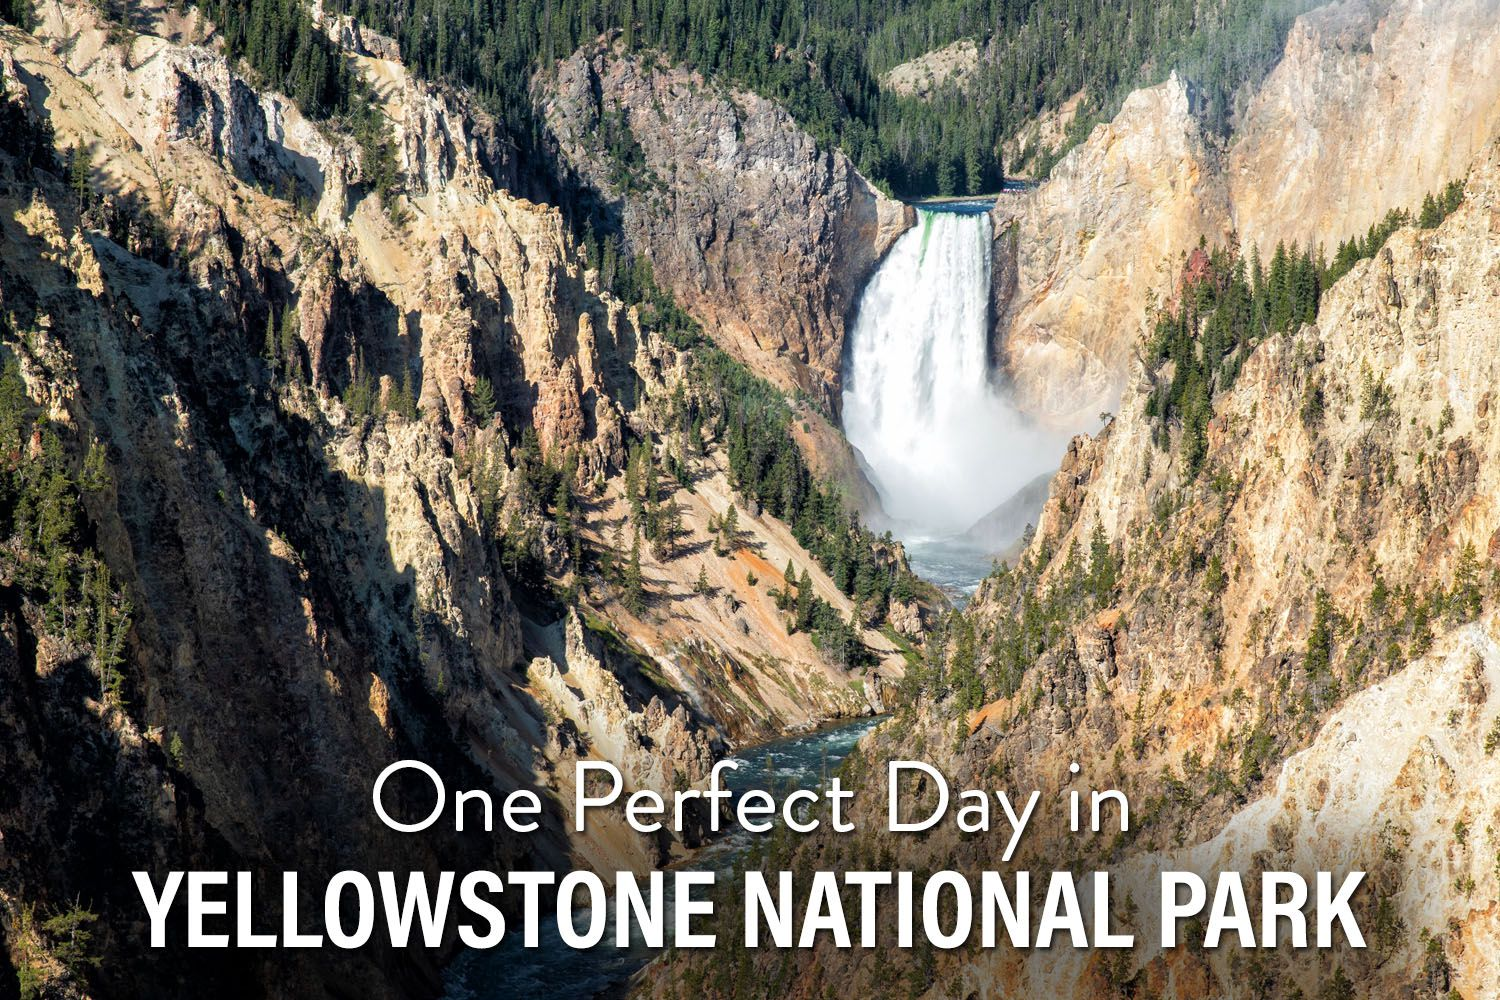 One Day in Yellowstone